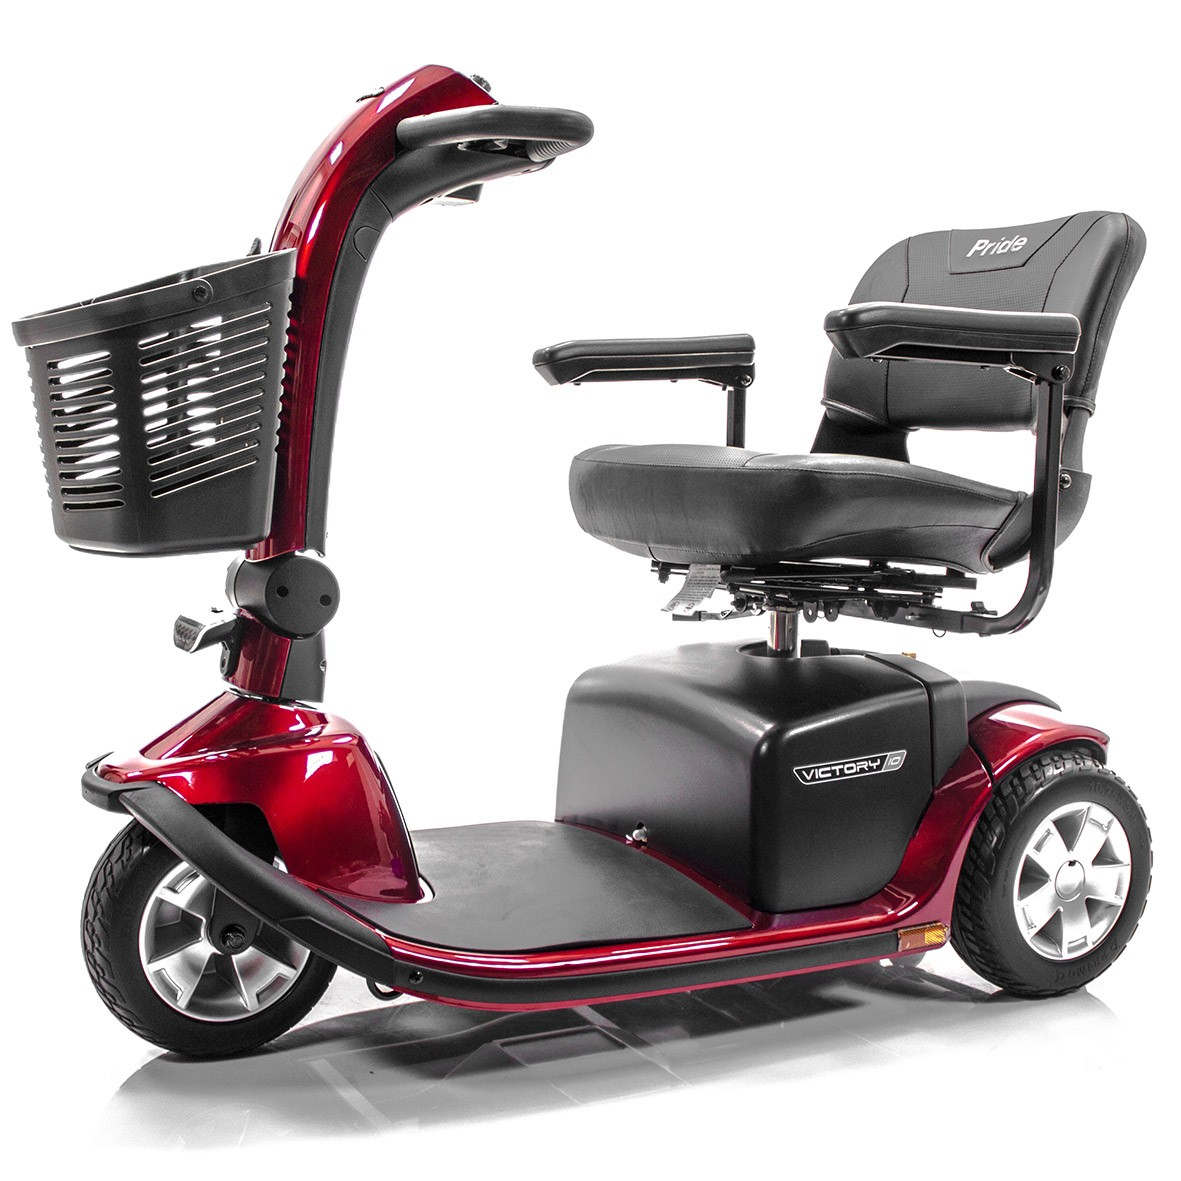 3 Wheel Scooter For Adults >> Buy Online Pride Victory 10 3 Wheel Electric Scooter